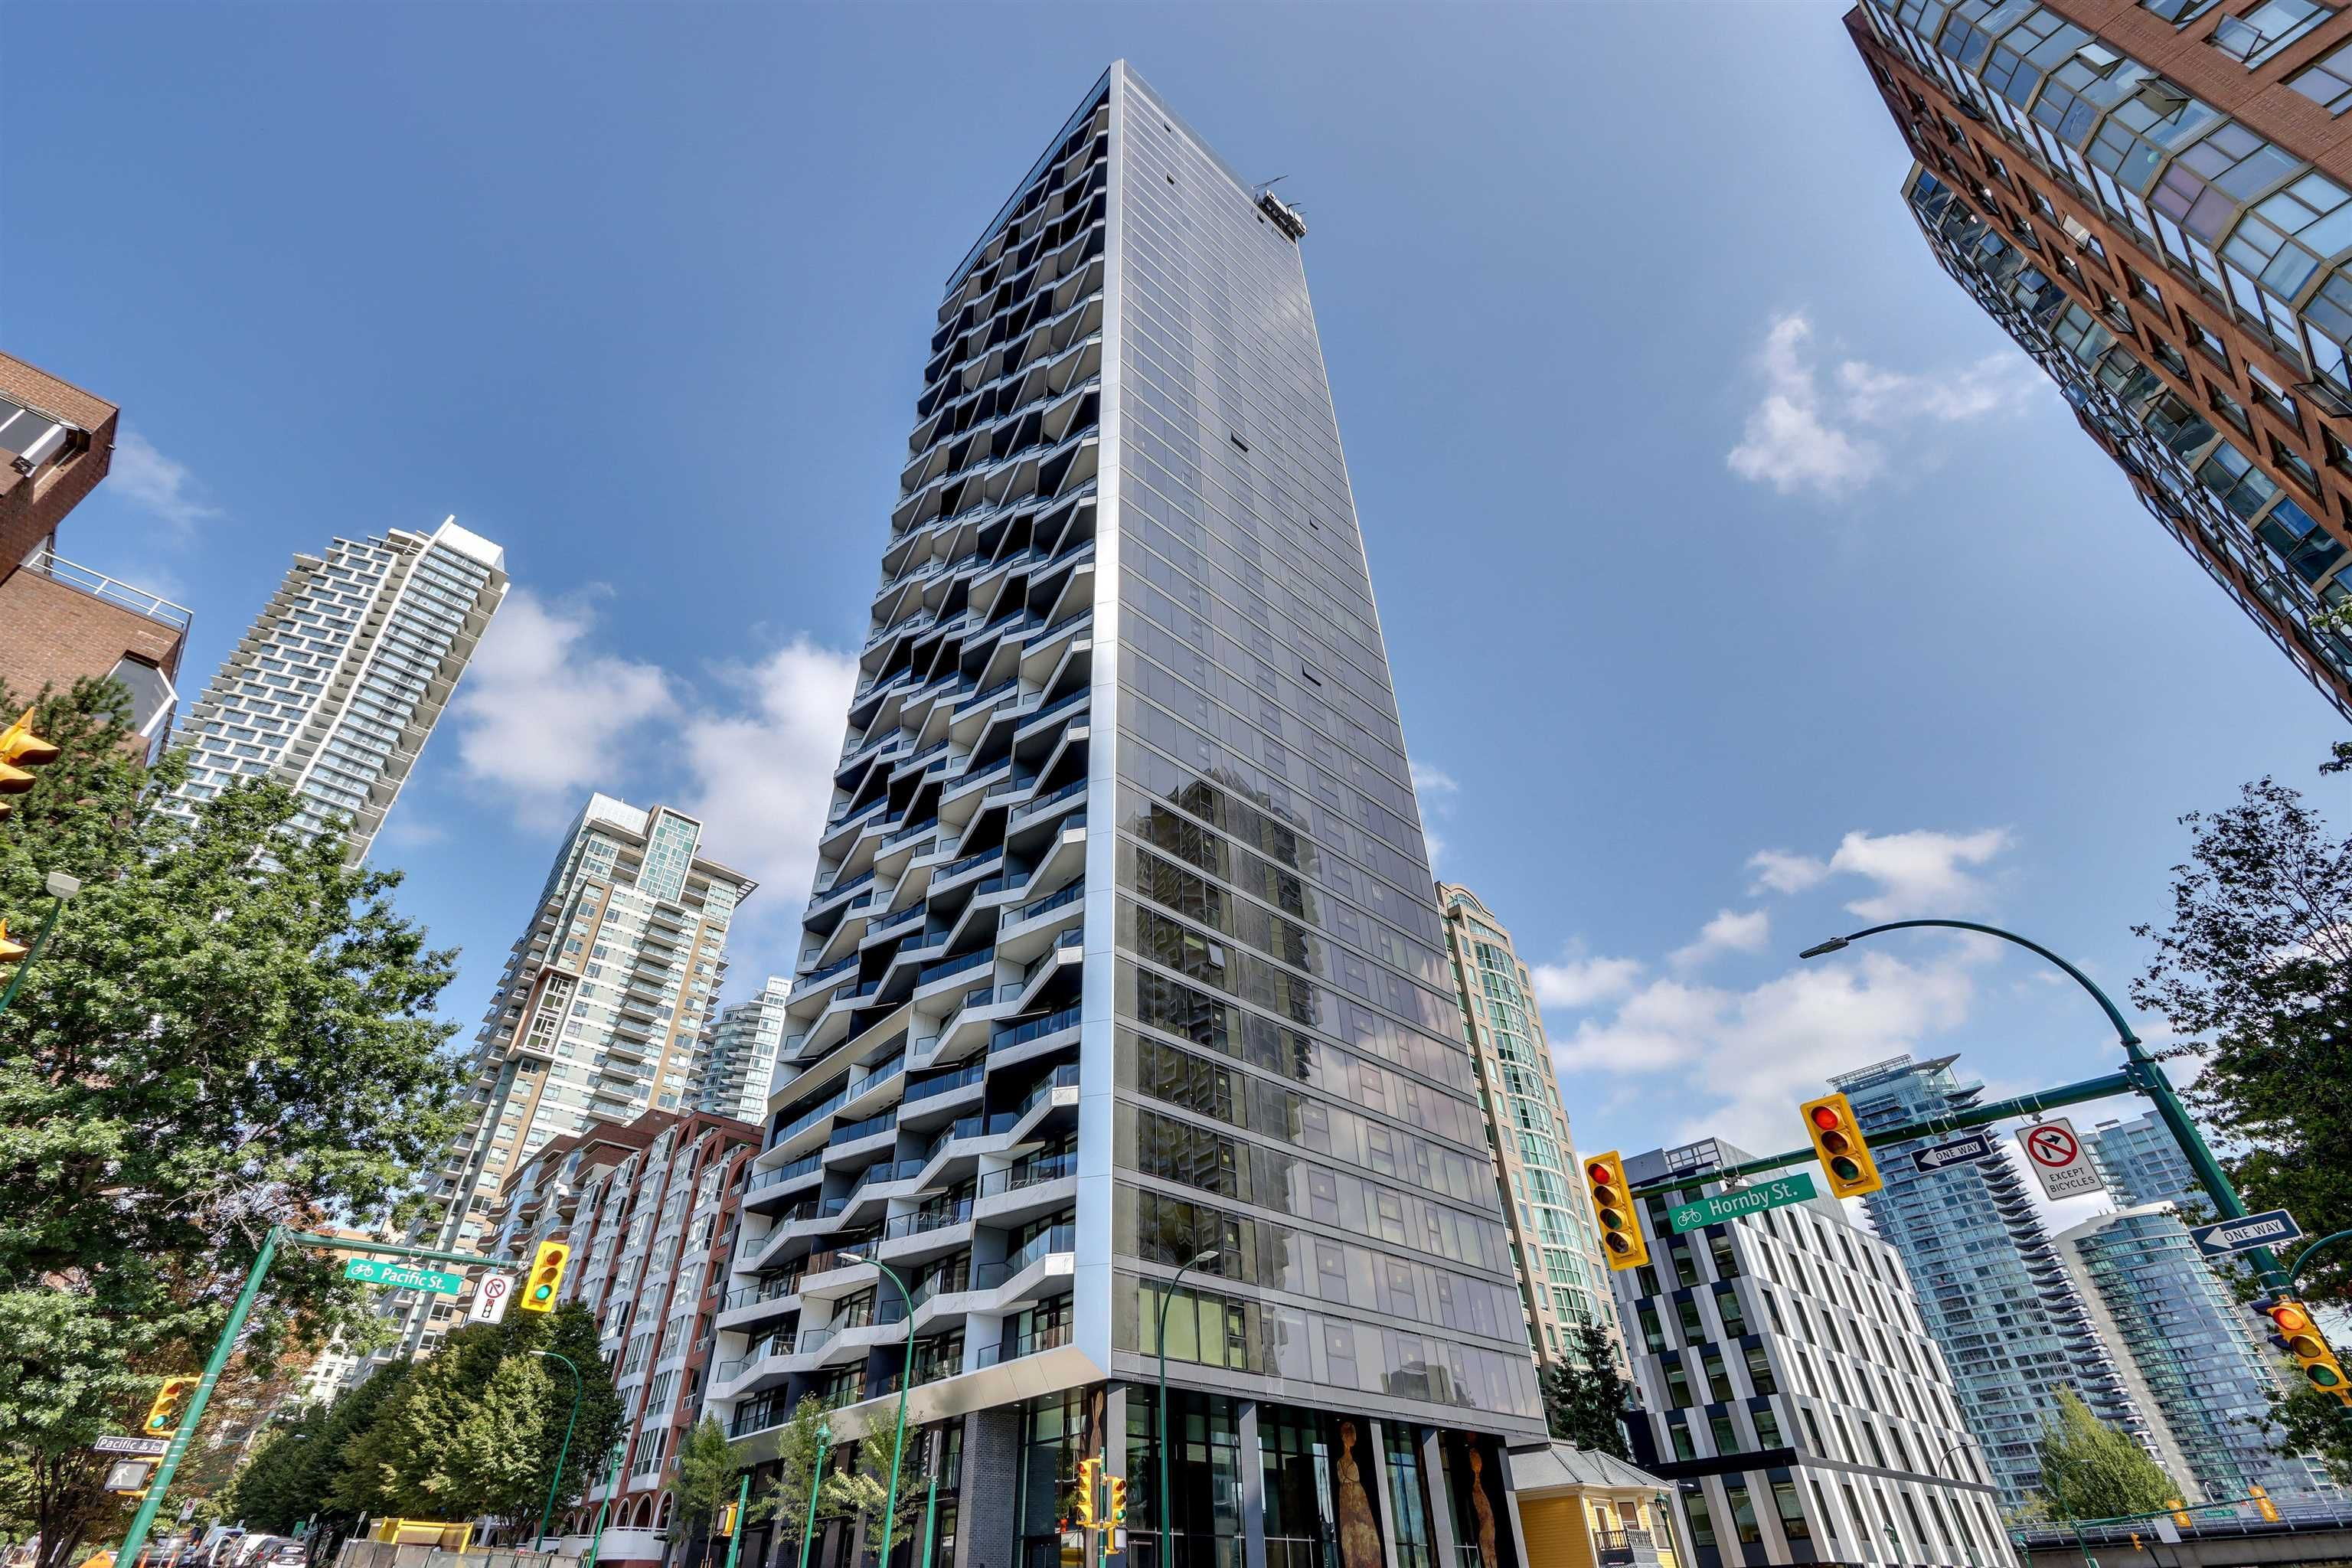 """Main Photo: 306 889 PACIFIC Street in Vancouver: Downtown VW Condo for sale in """"The Pacific"""" (Vancouver West)  : MLS®# R2610725"""